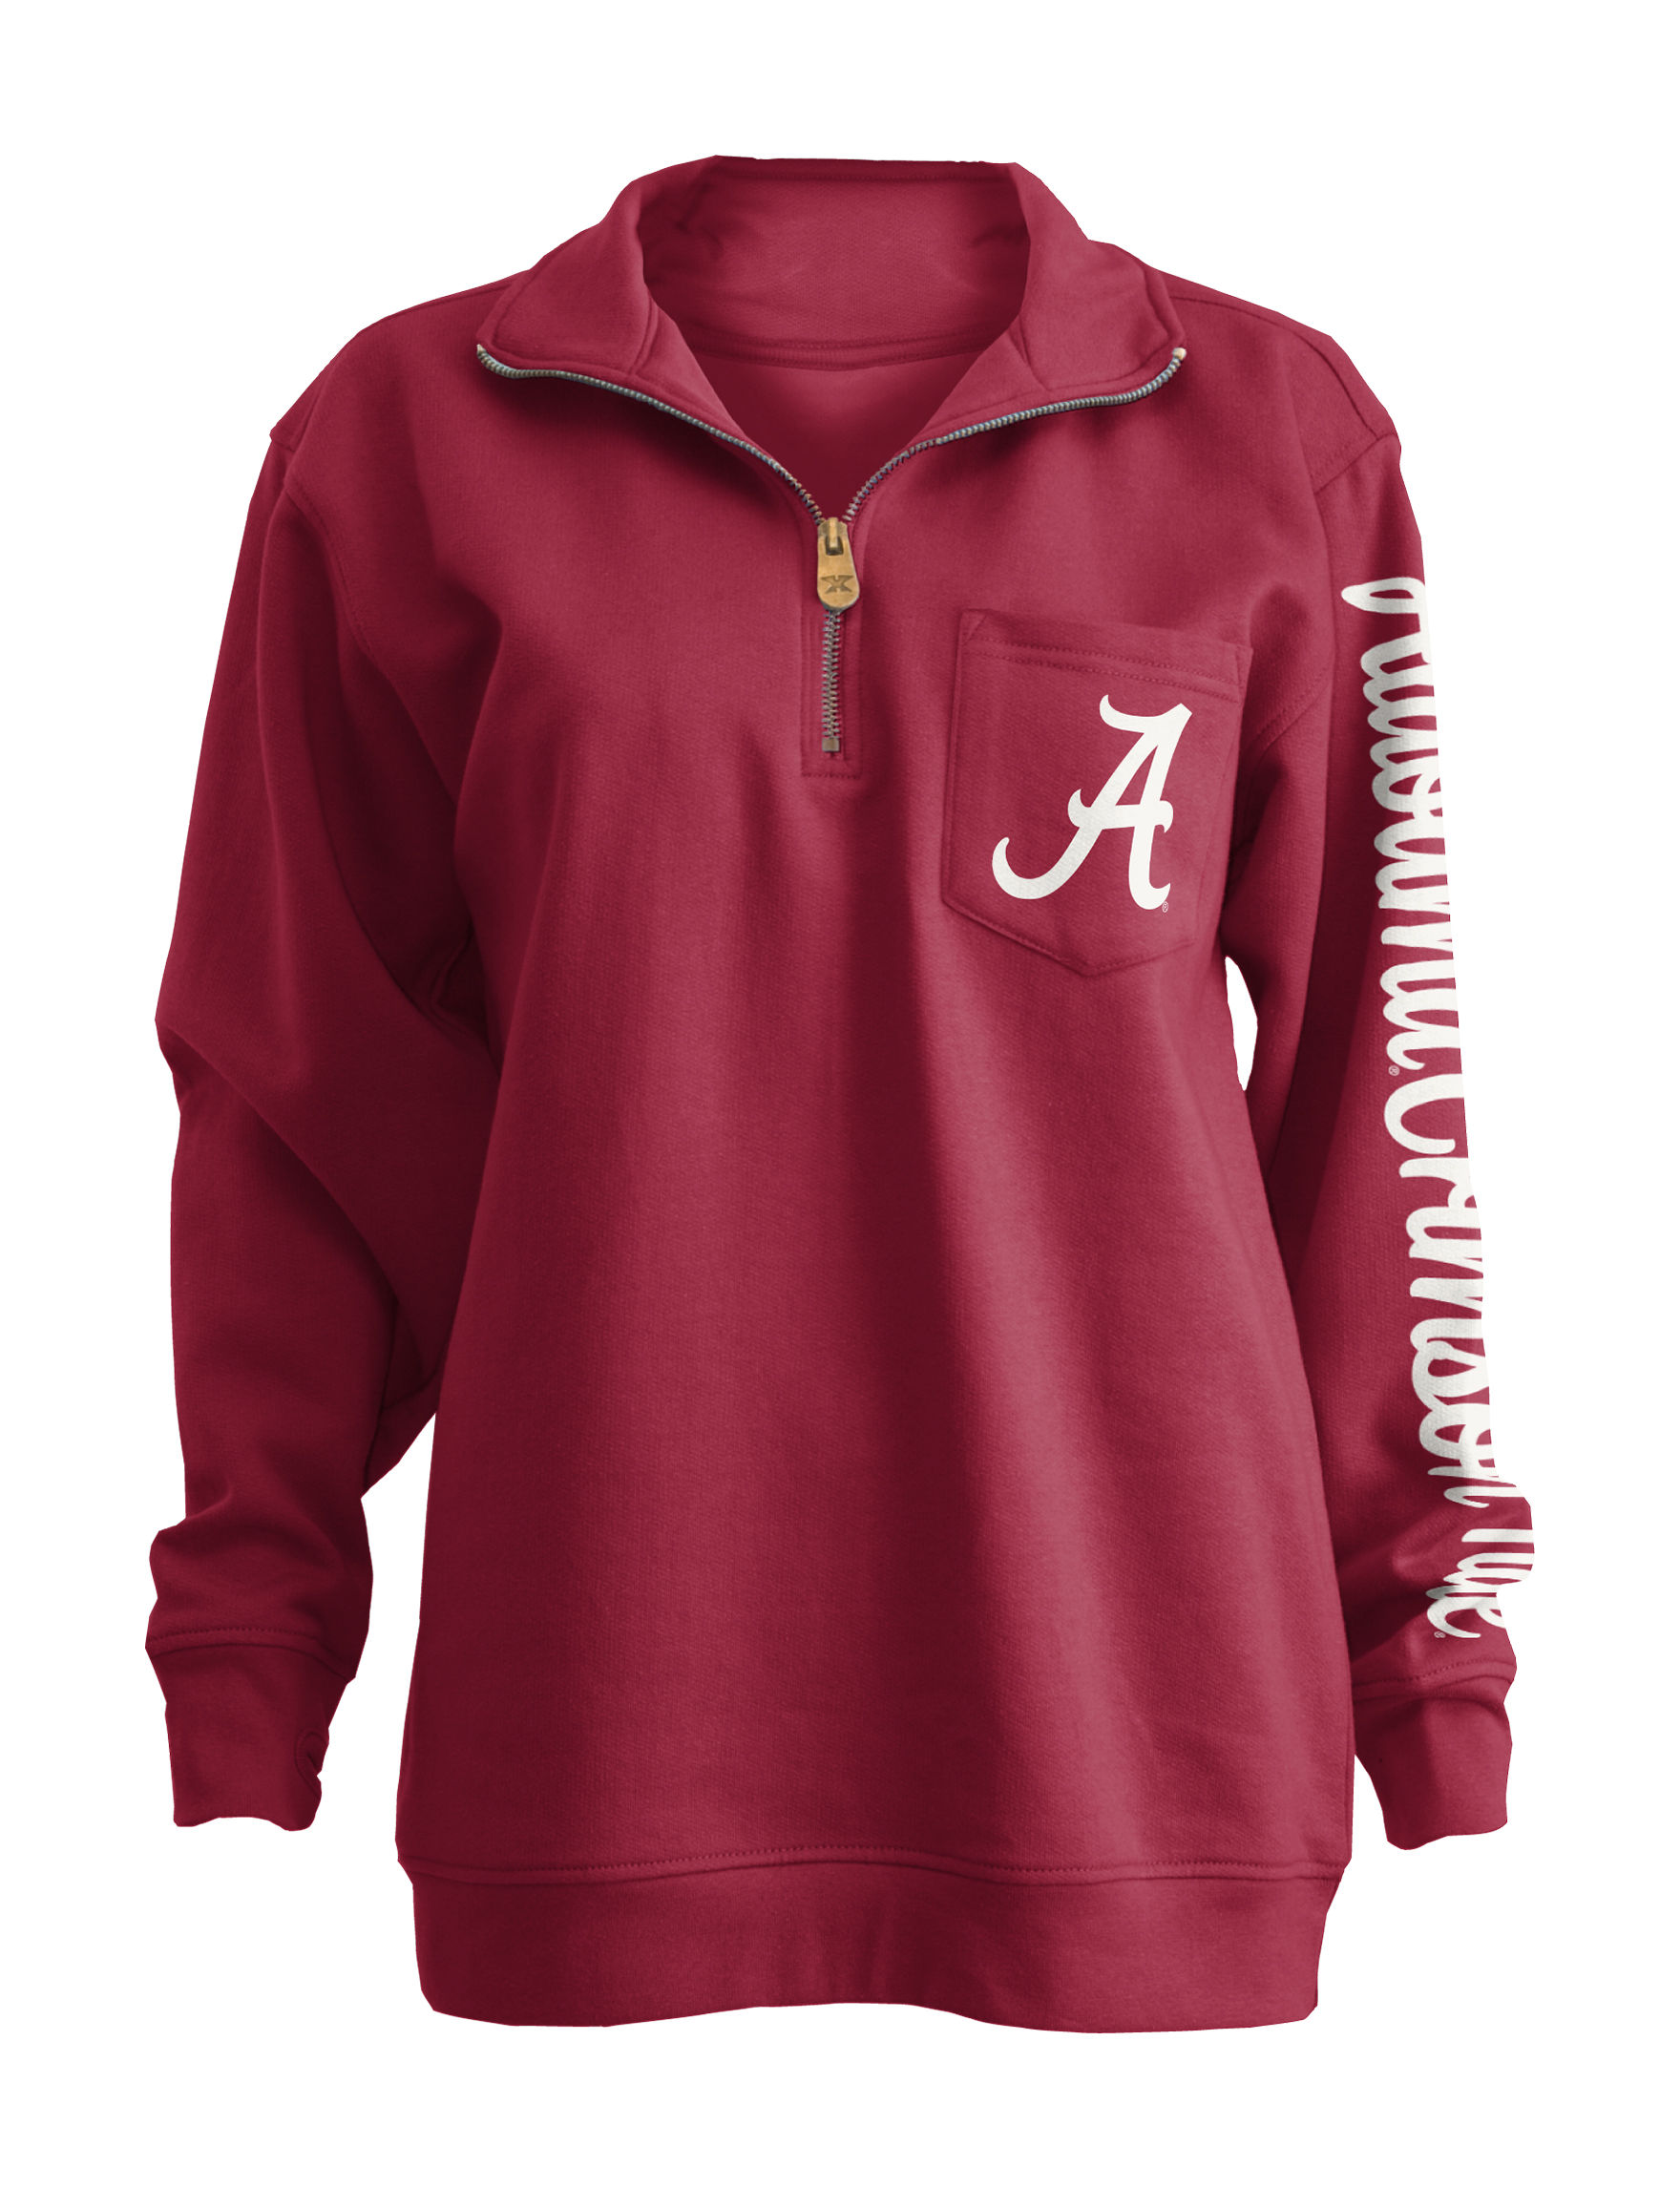 NCAA Red Pull-overs